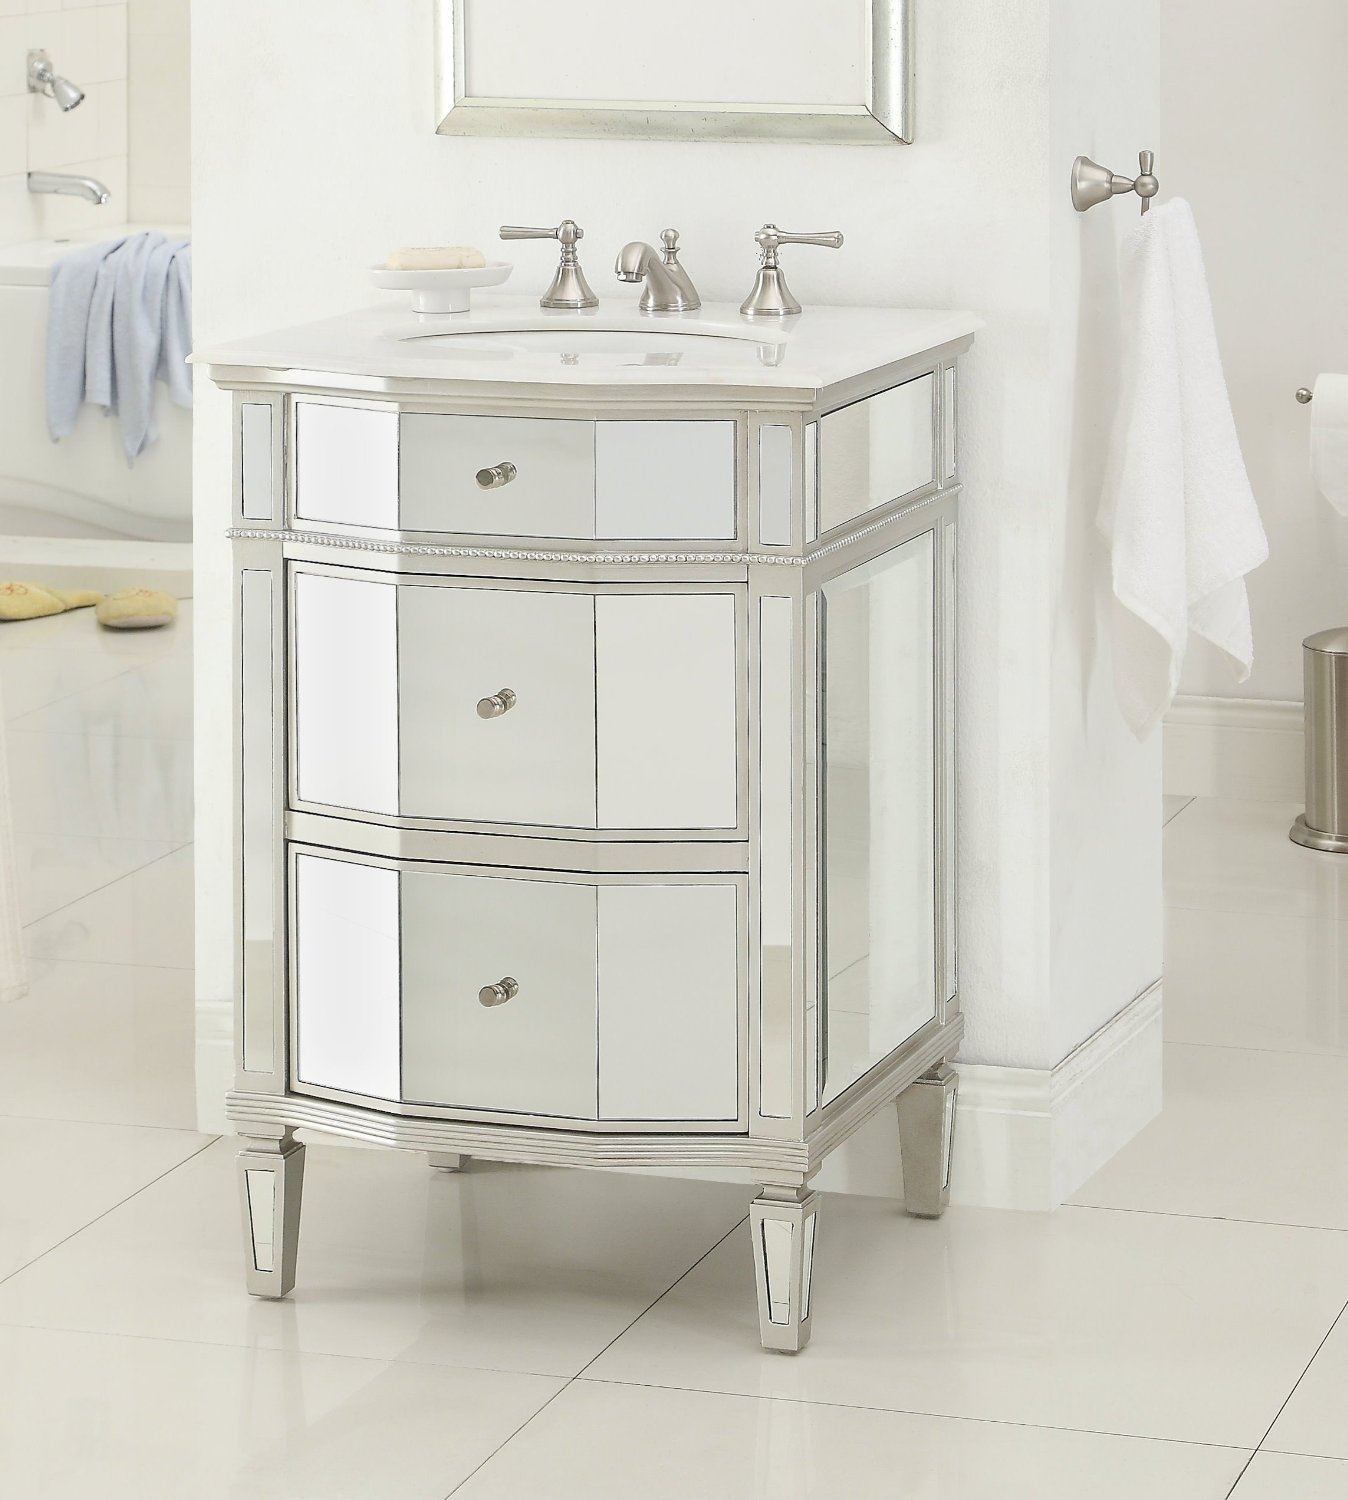 Permalink to Bathroom Vanities 24 Inches And Under